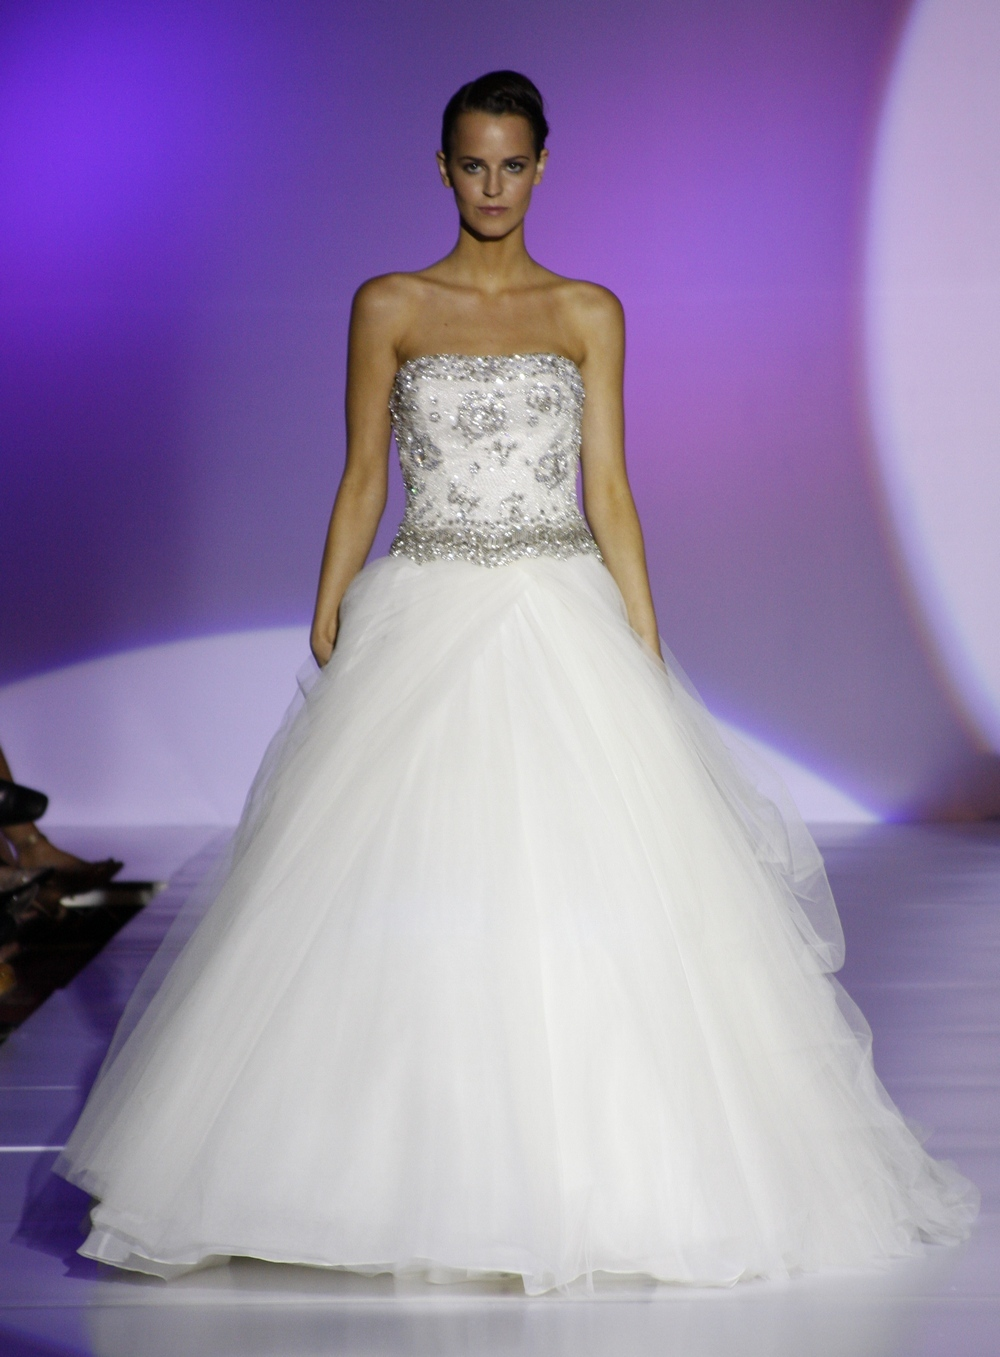 Enzoani-fleur-ballgown-wedding-dress-beaded-embellished-bodice-spring-2011-front.full